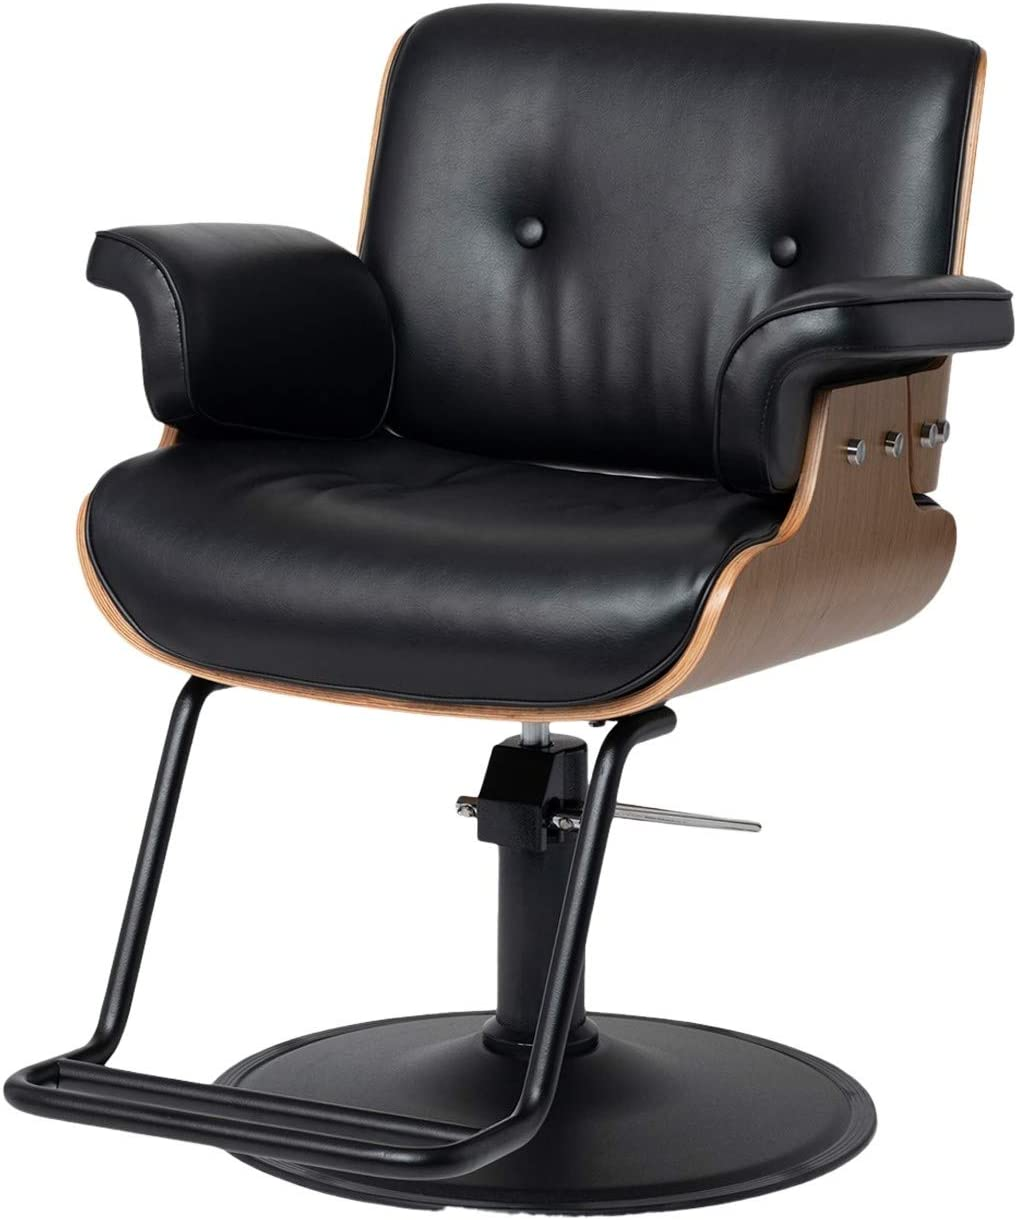 Buy-Rite Keaton Styling Chair Design Mid-Century Max 51% OFF We OFFer at cheap prices Modern Padded